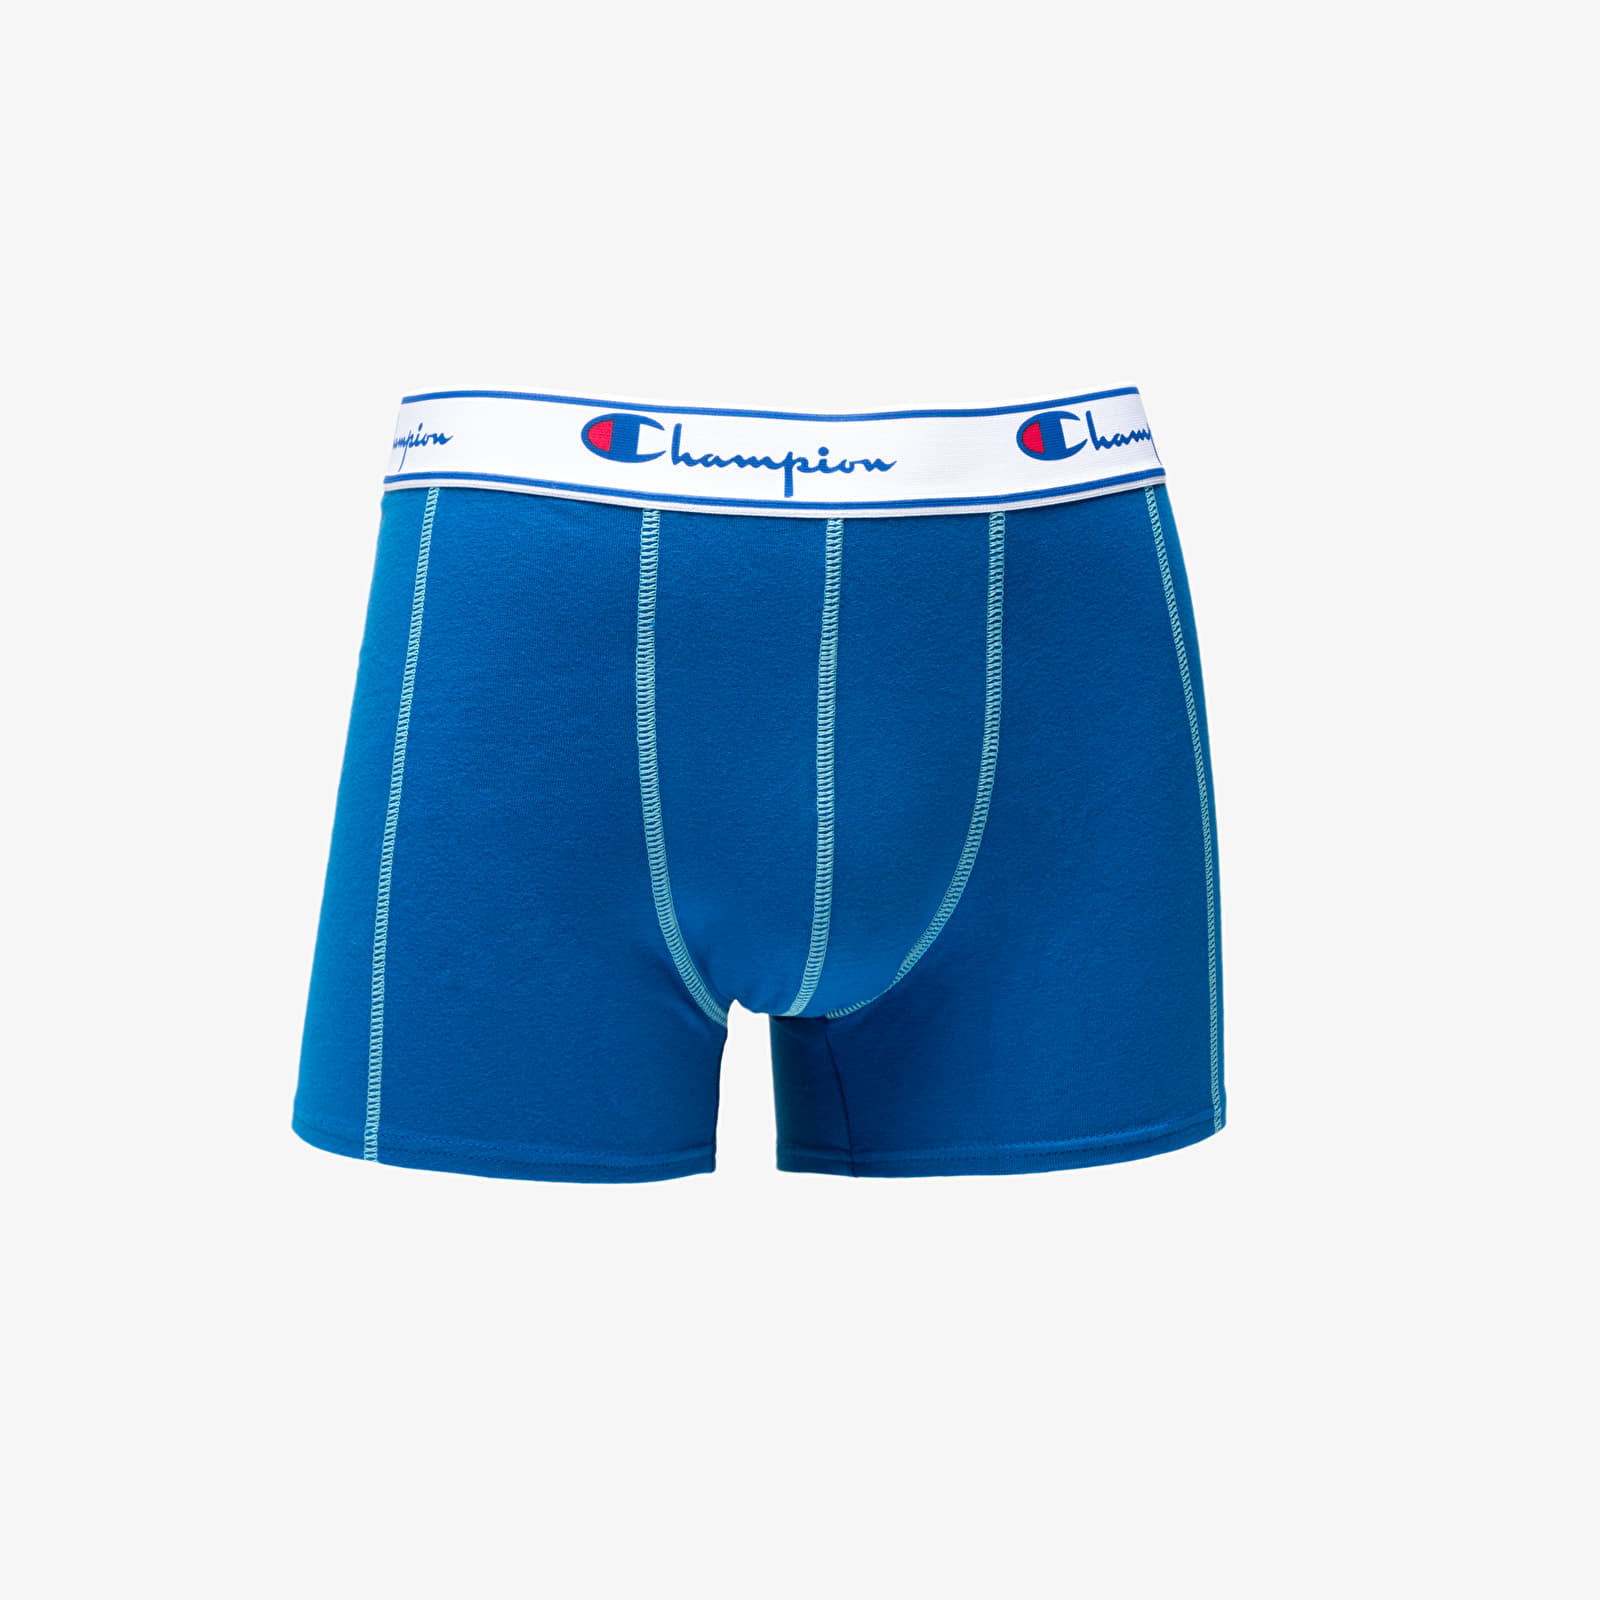 Мъжко бельо Champion 2Pack Boxers Navy/ Blue